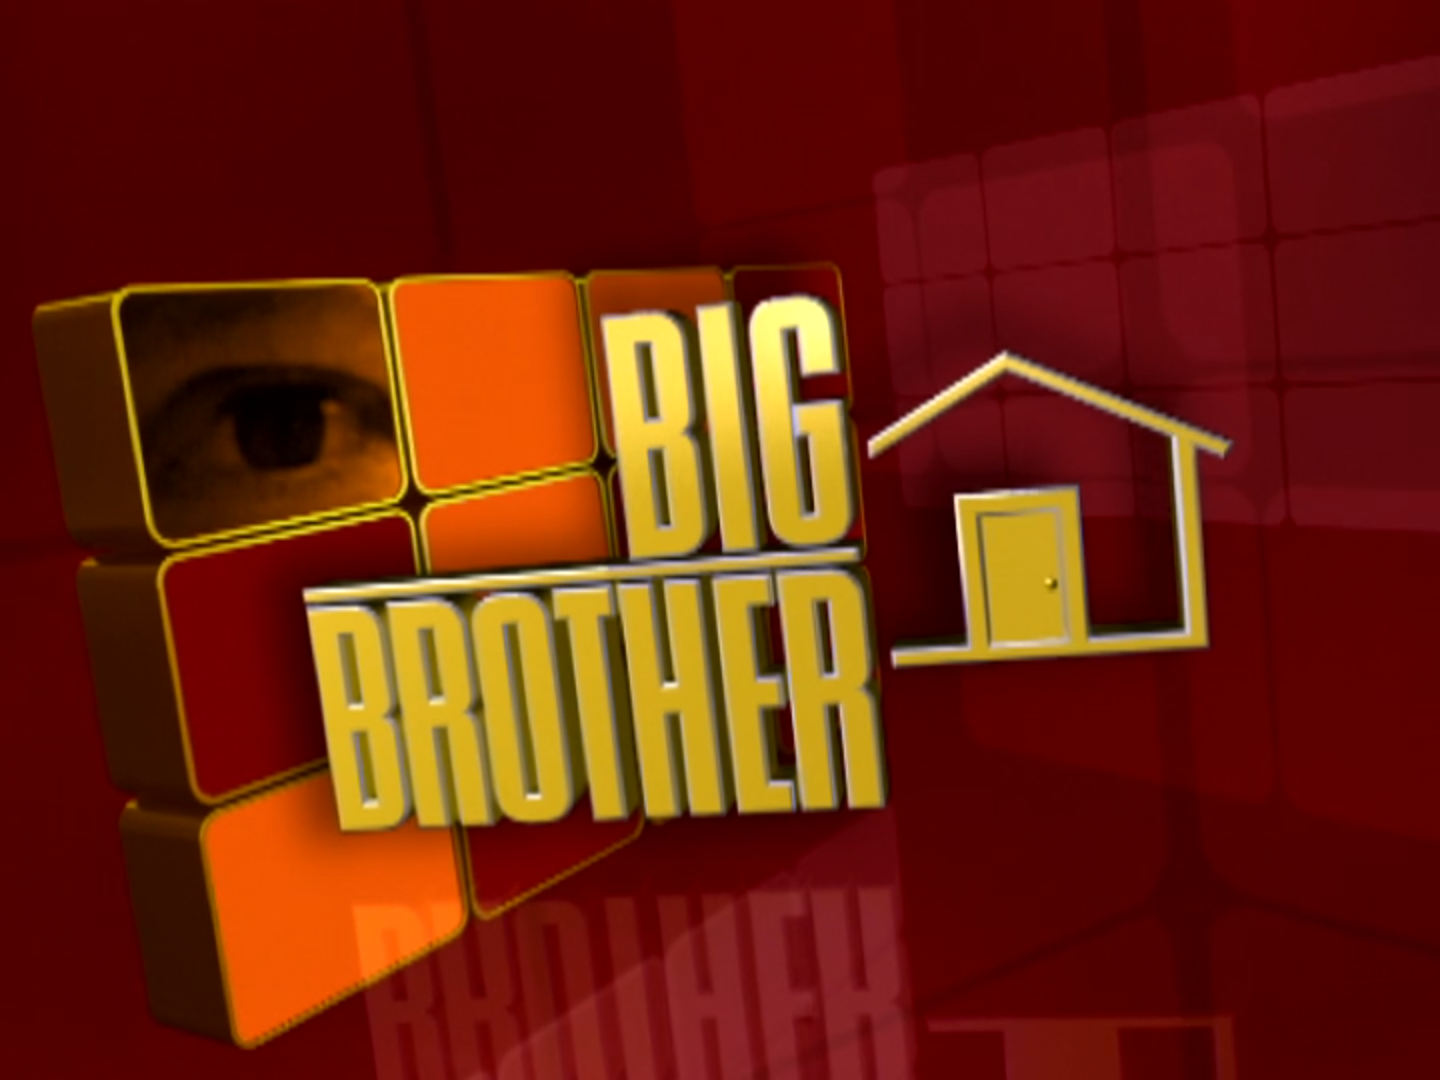 Big Brother 13 (US)